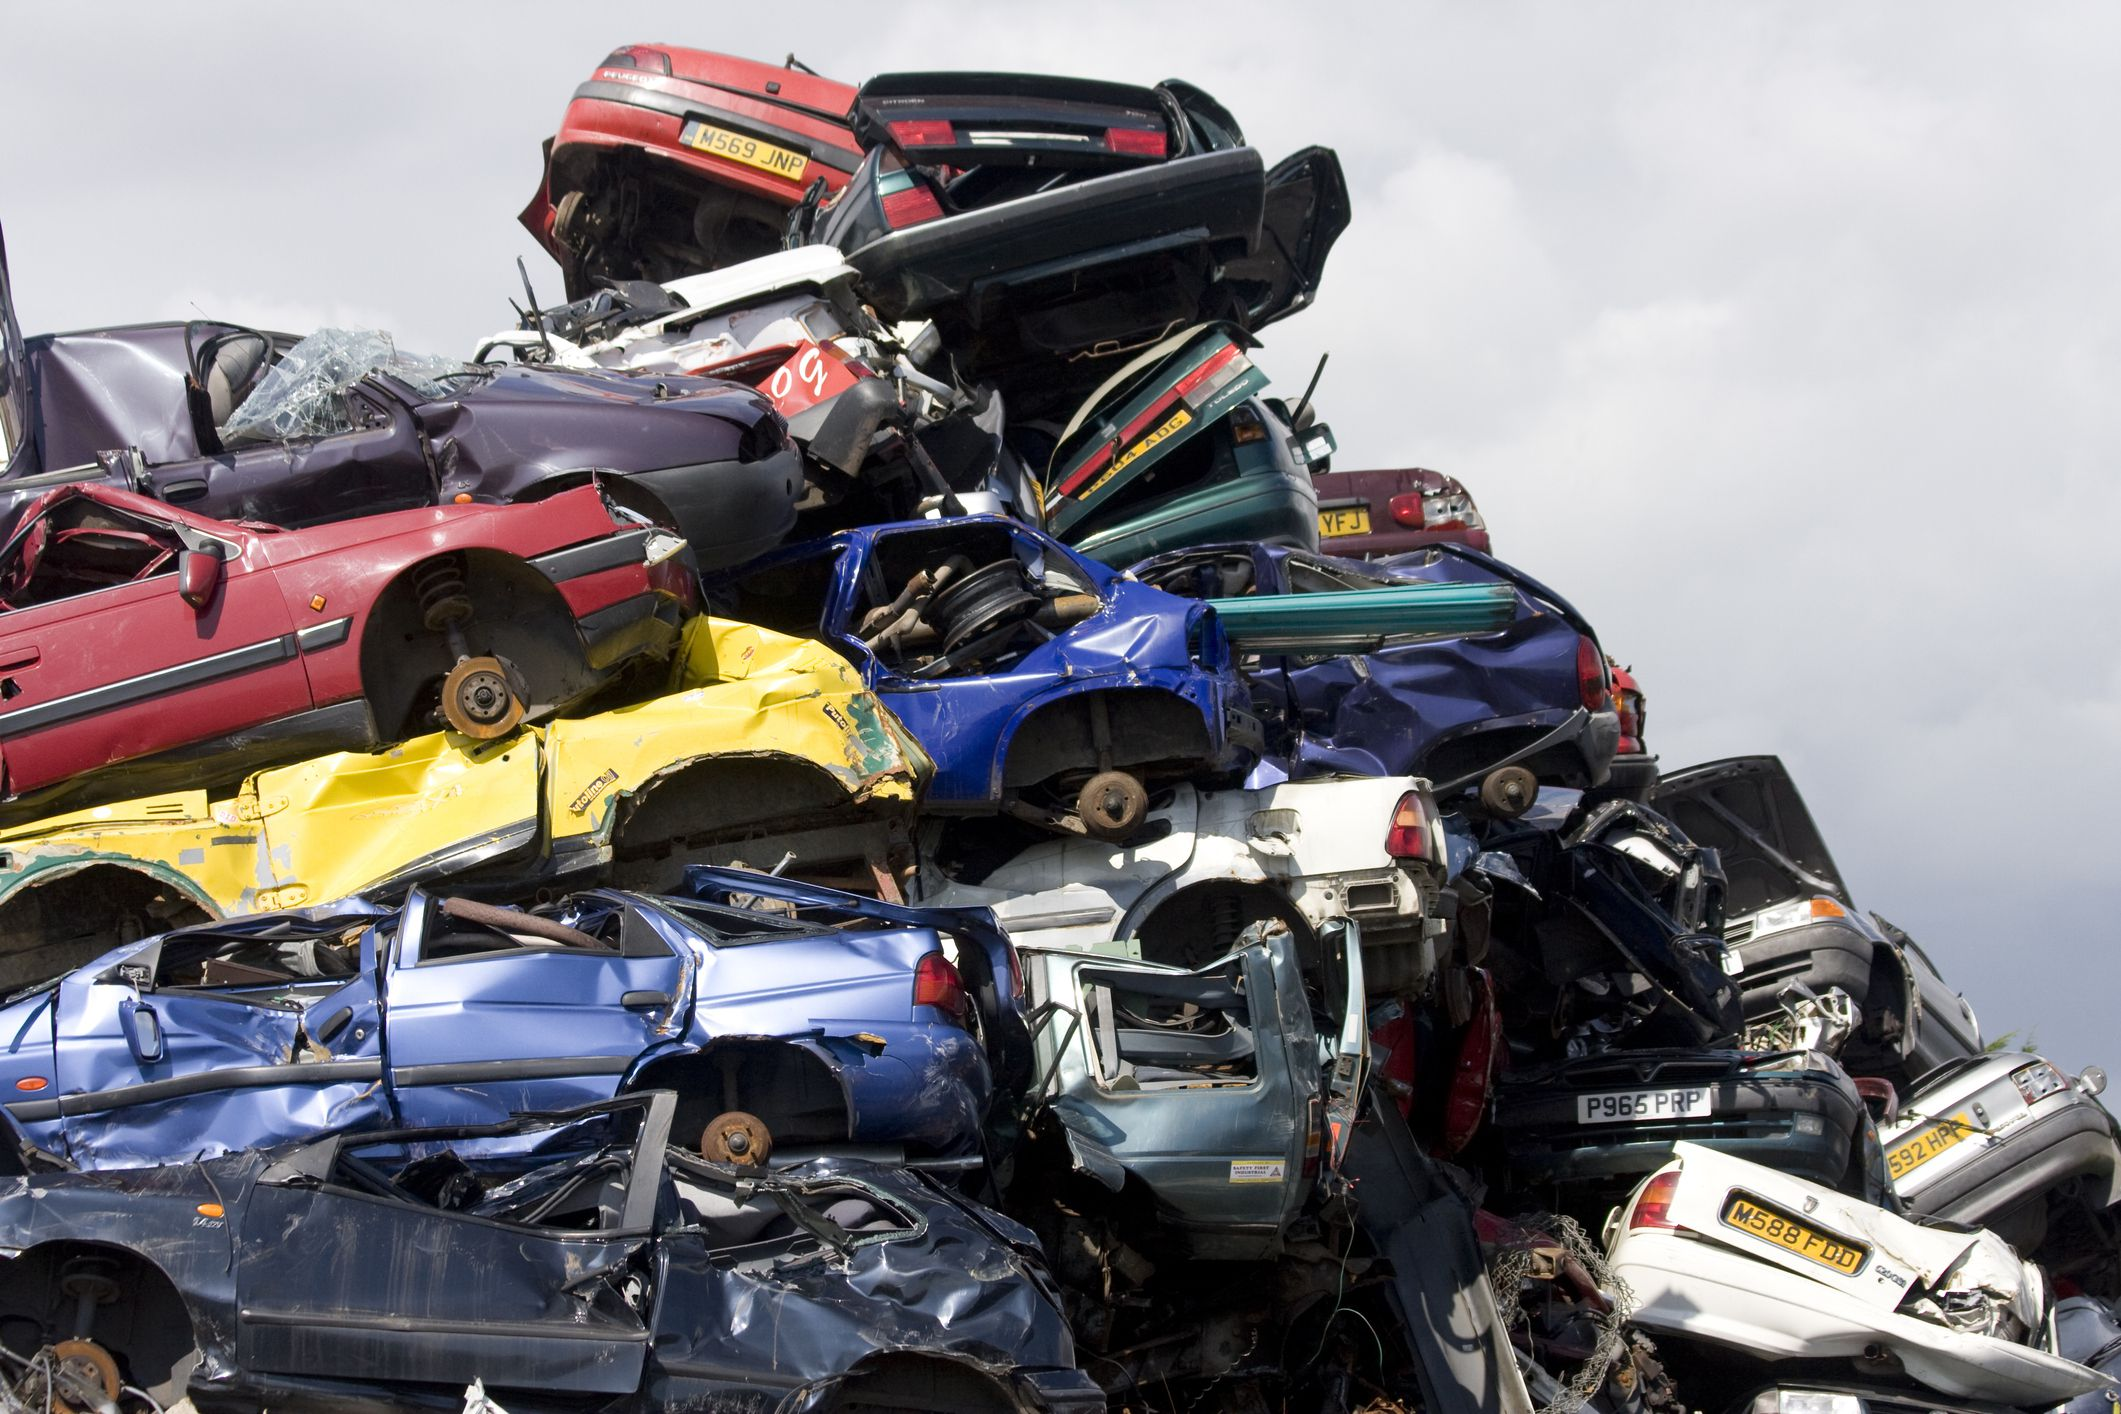 Auto Recycling Recent Trends, Statistics, Opportunities, and Challenges